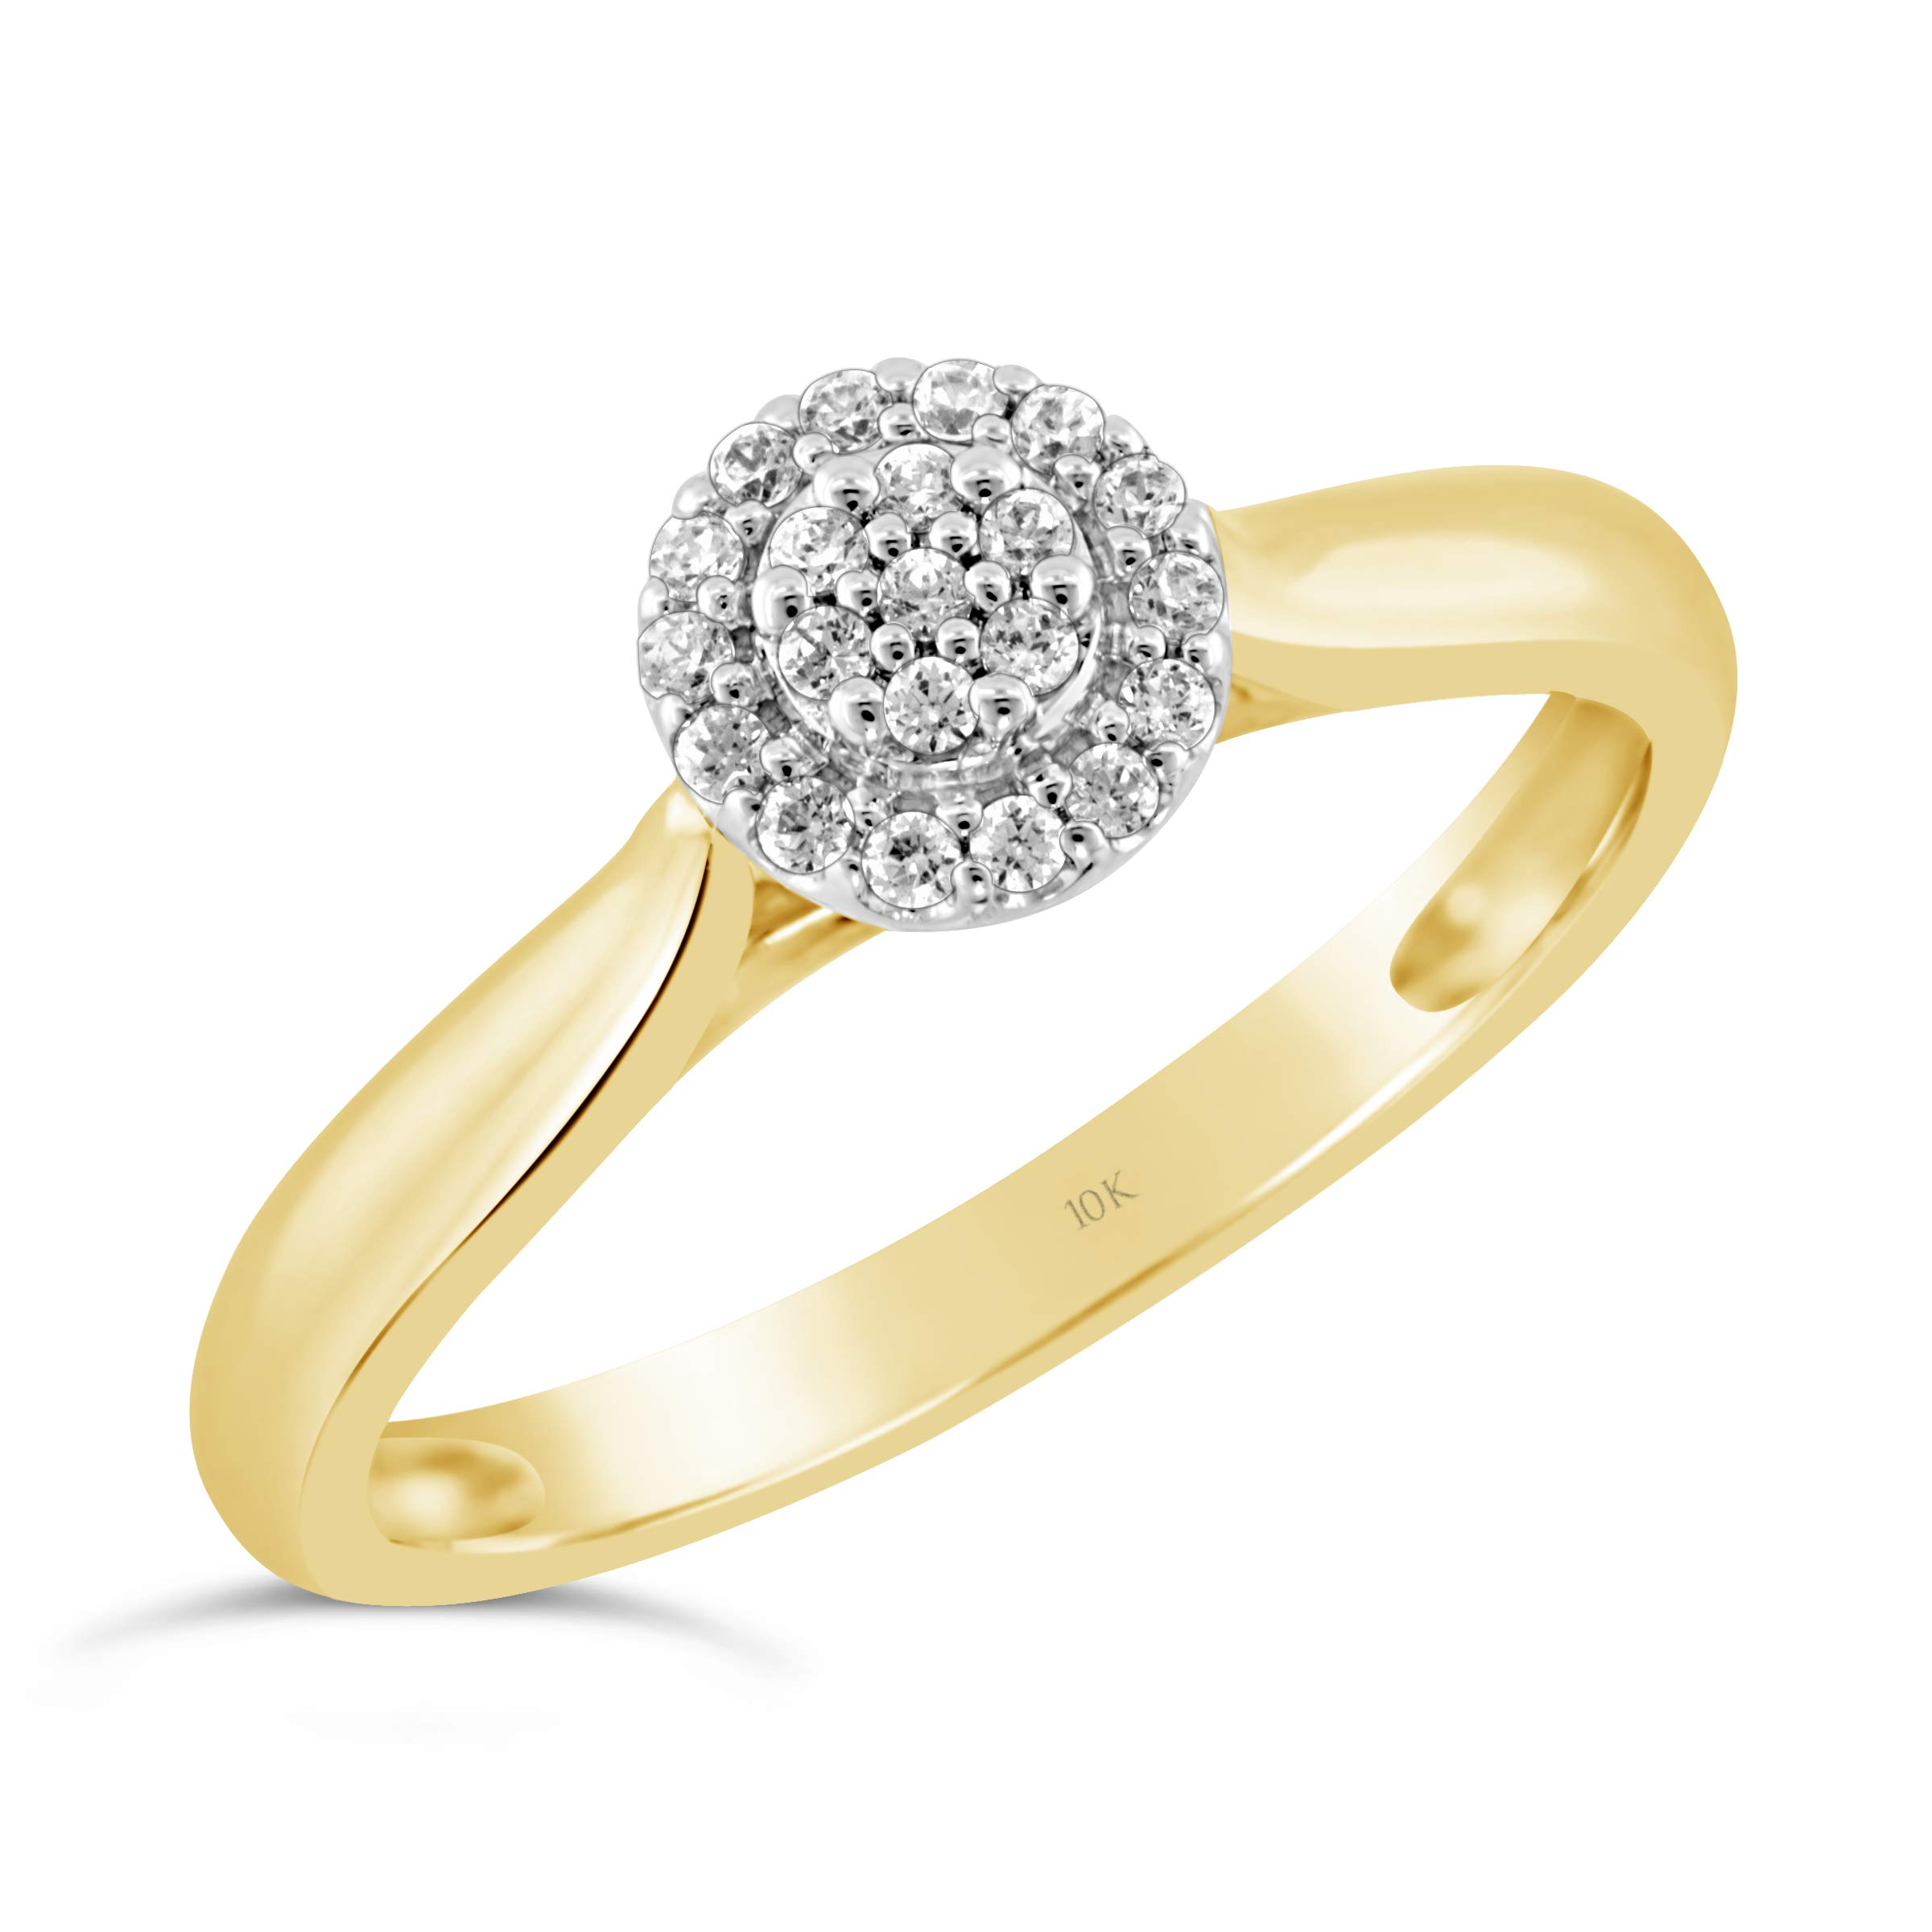 Brilliant Expressions 10K Yellow and White Gold 1/10 Cttw Conflict Free Diamond Round Halo Cluster Engagement Ring (I-J Color, I2-I3 Clarity), Size 8 by Brilliant Expressions (Image #1)